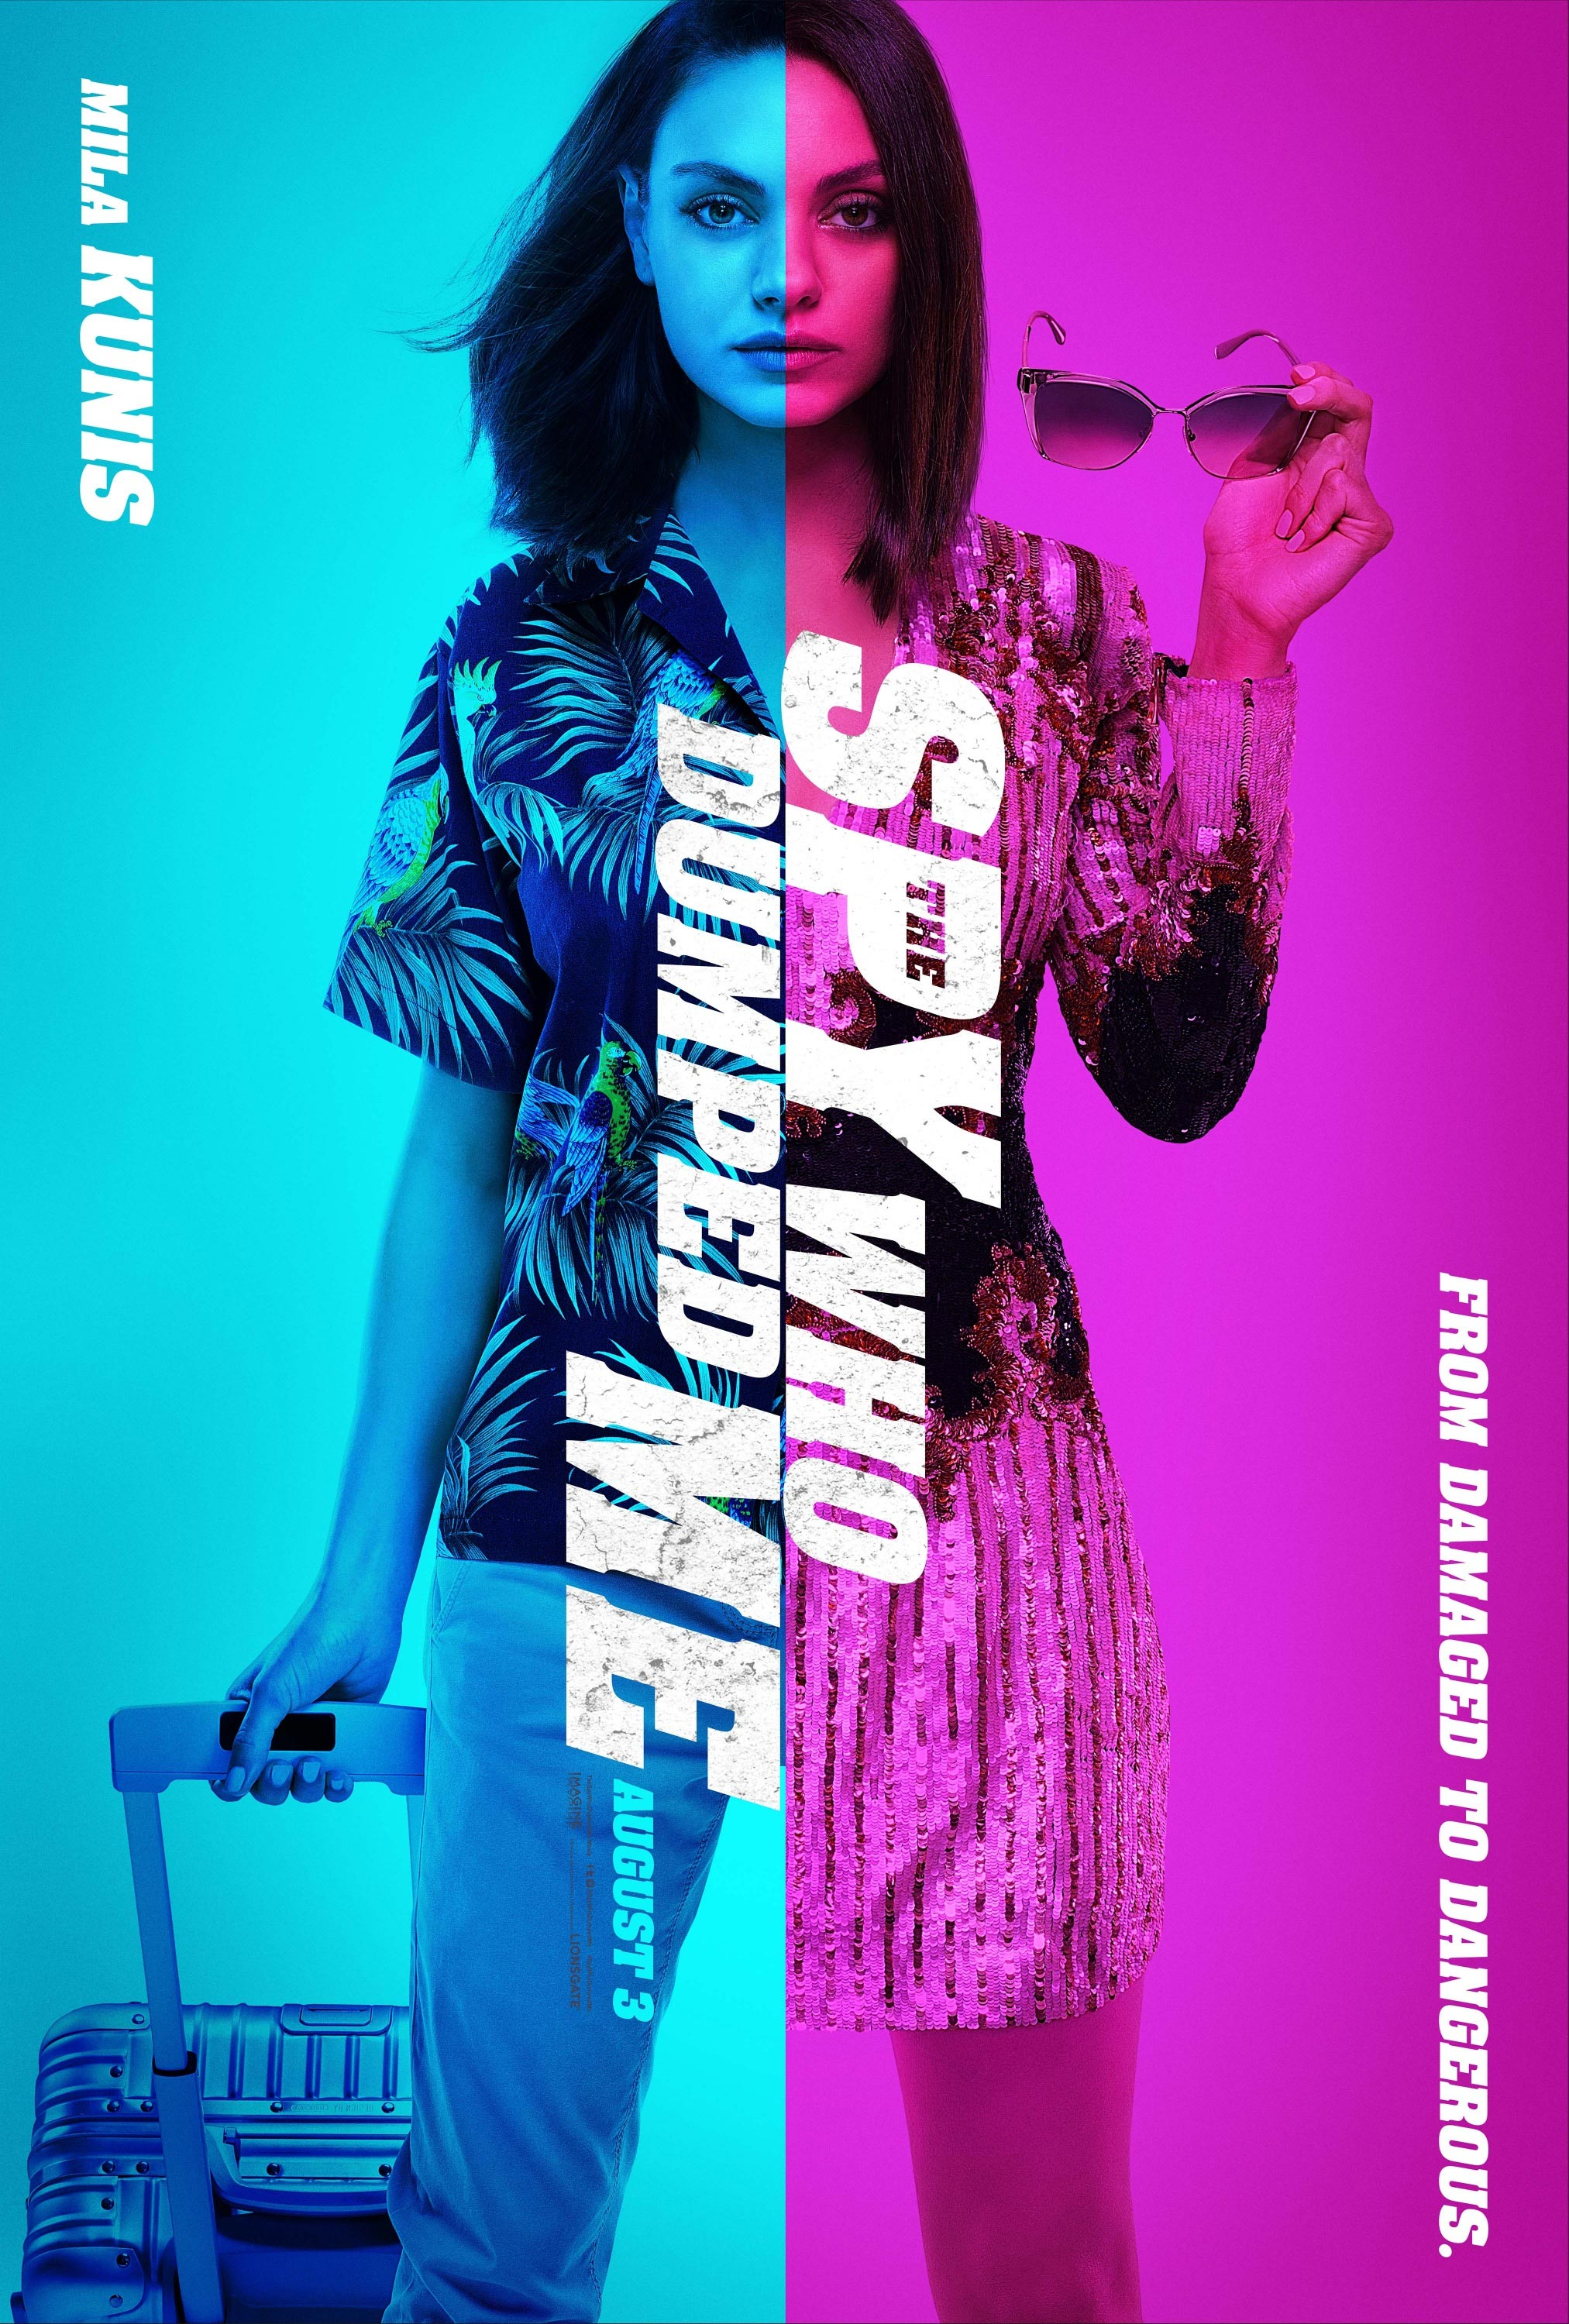 The Spy Who Dumped Me Poster #2